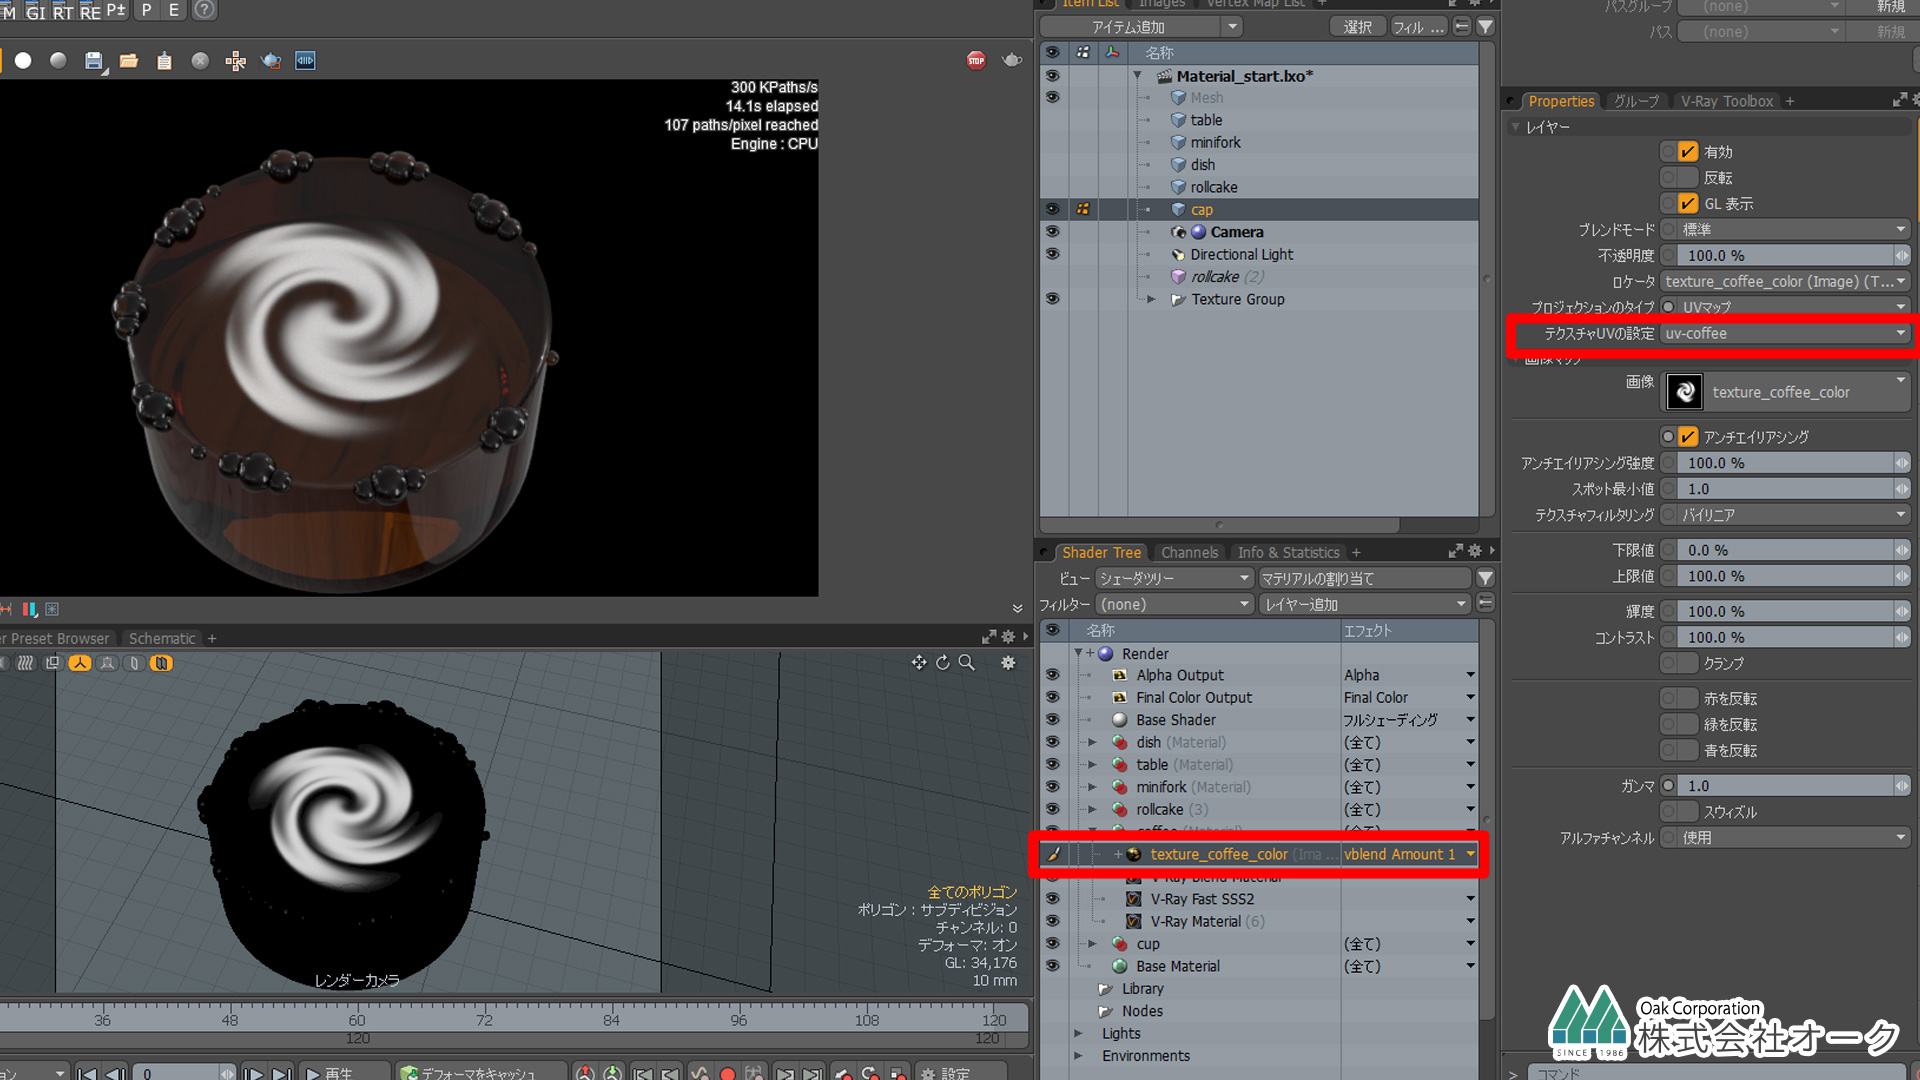 V-Ray vblend Amount